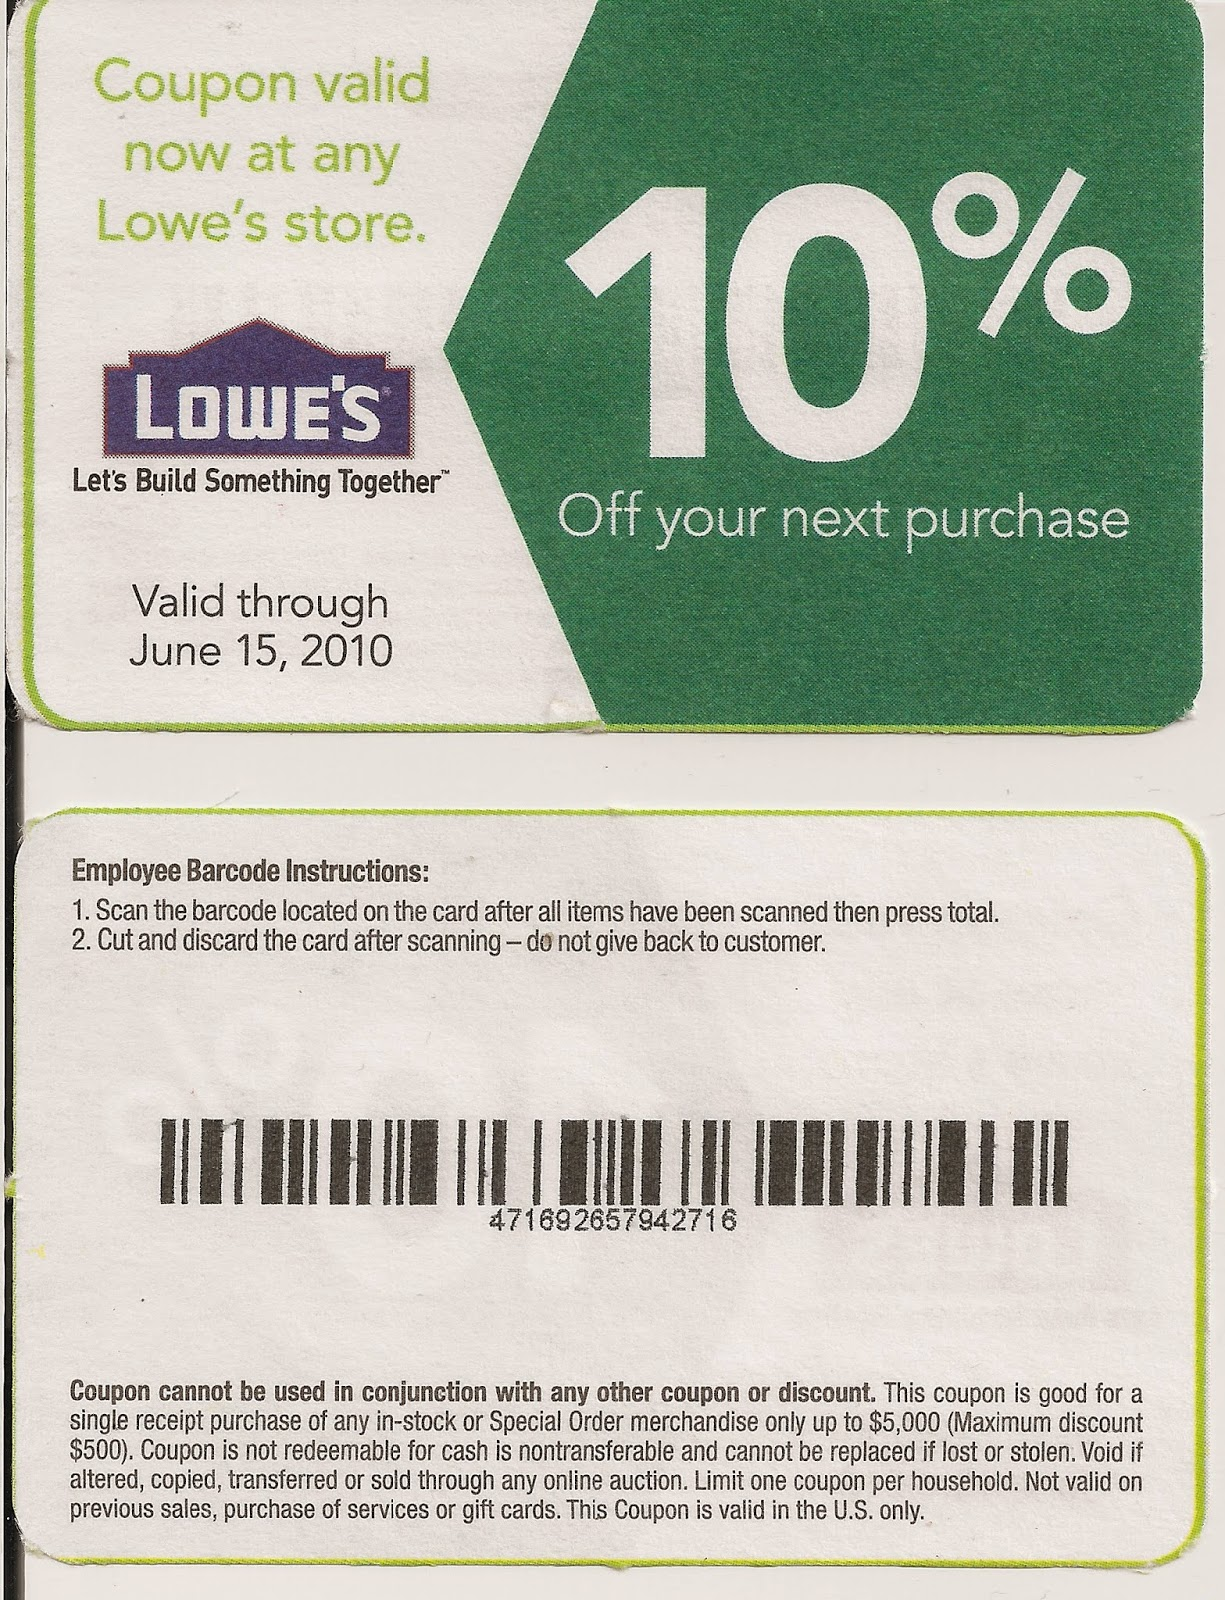 image about Lowes Coupon Printable known as Coupon code for lowes on the internet - Southwest airways coupon